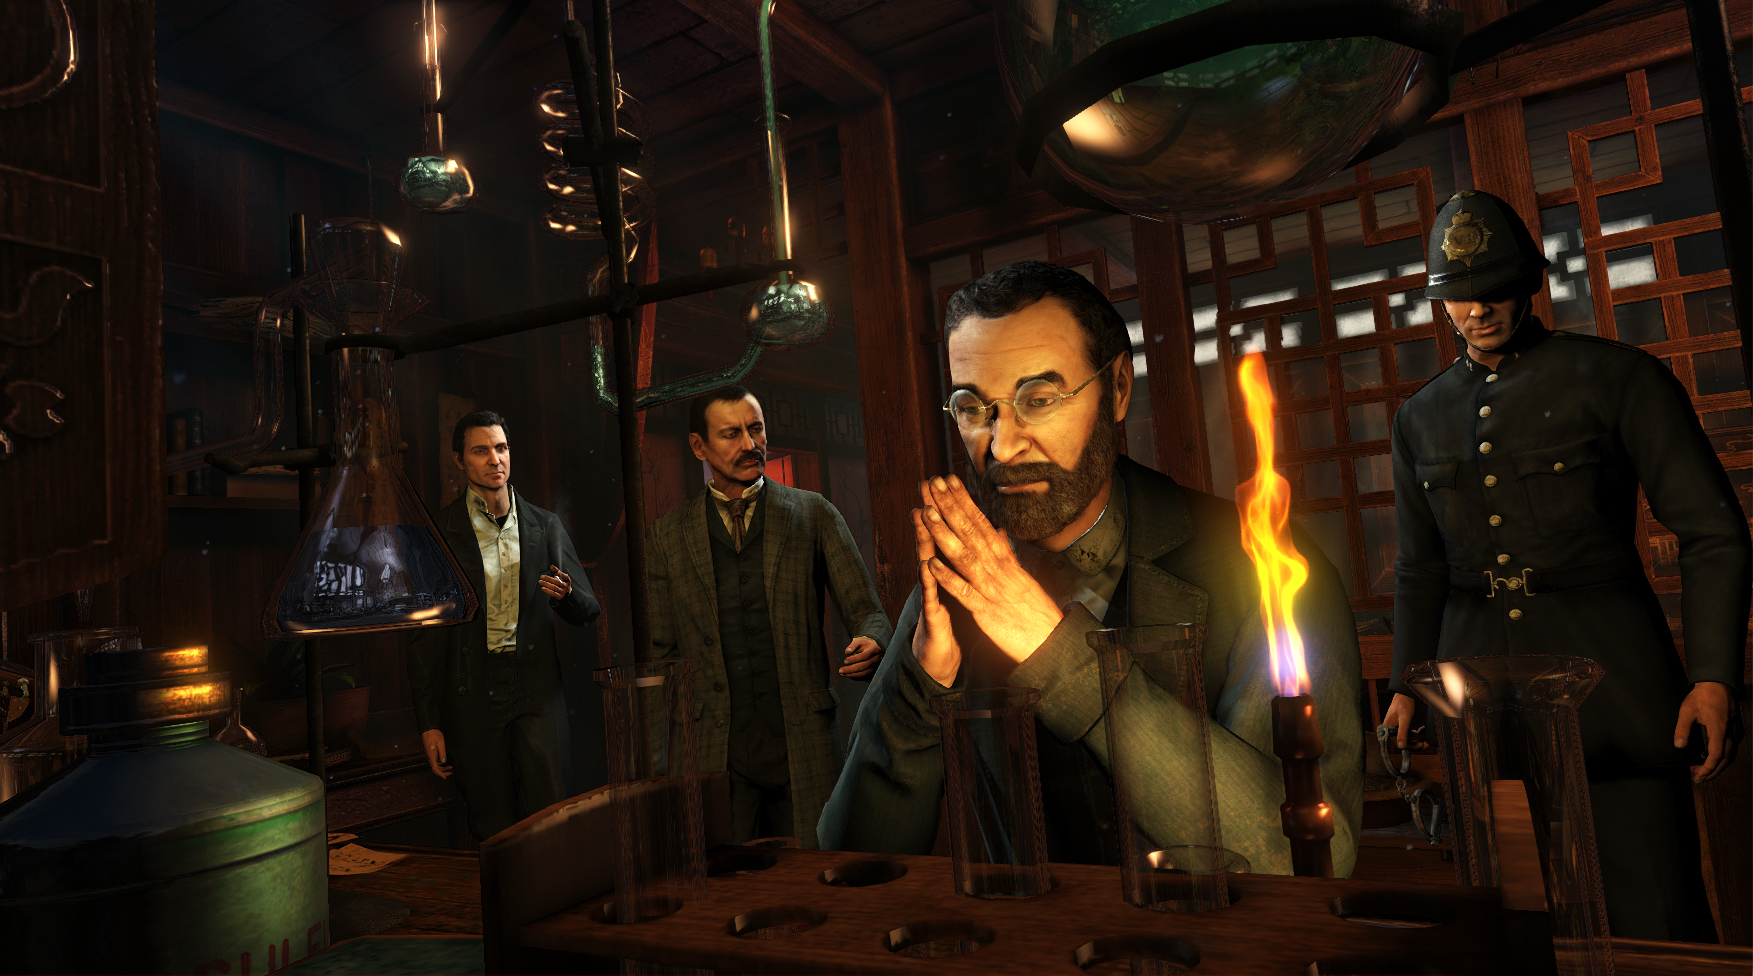 Sherlock Holmes developer says its publisher is pulling its games from stores against the studio's wishes